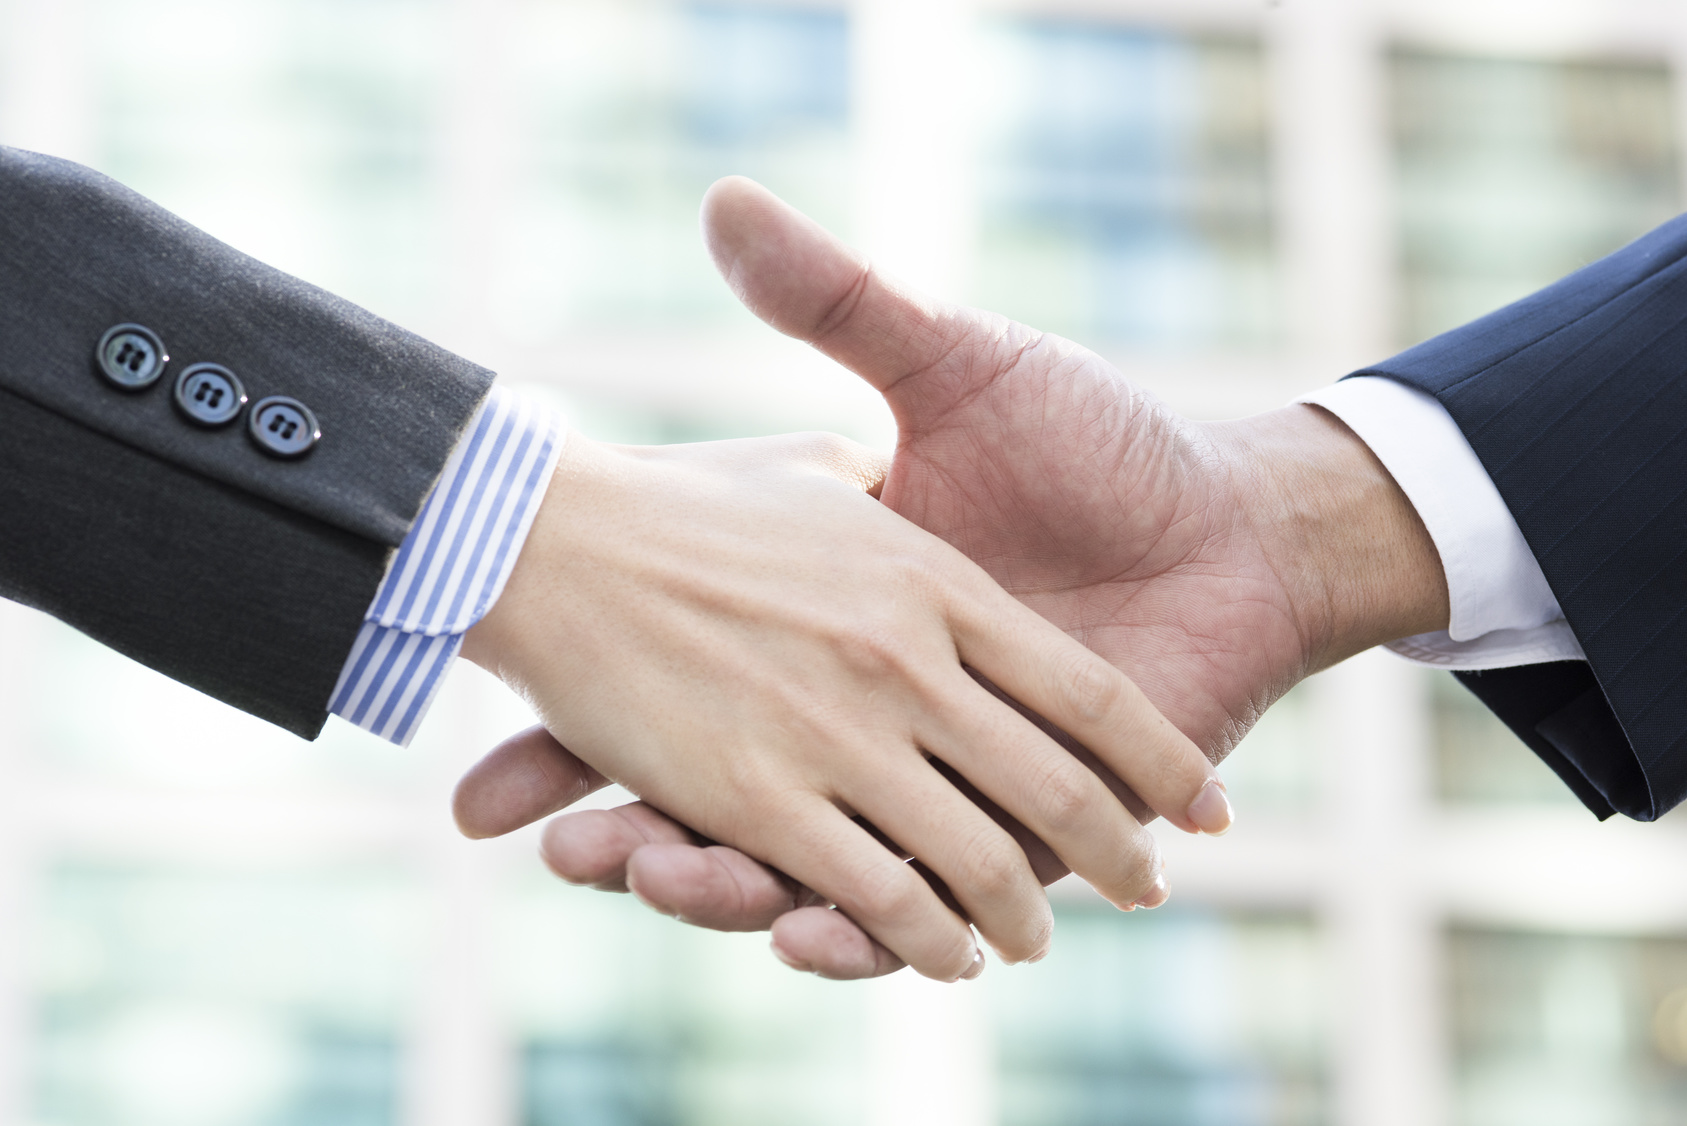 The handshake to have businessman